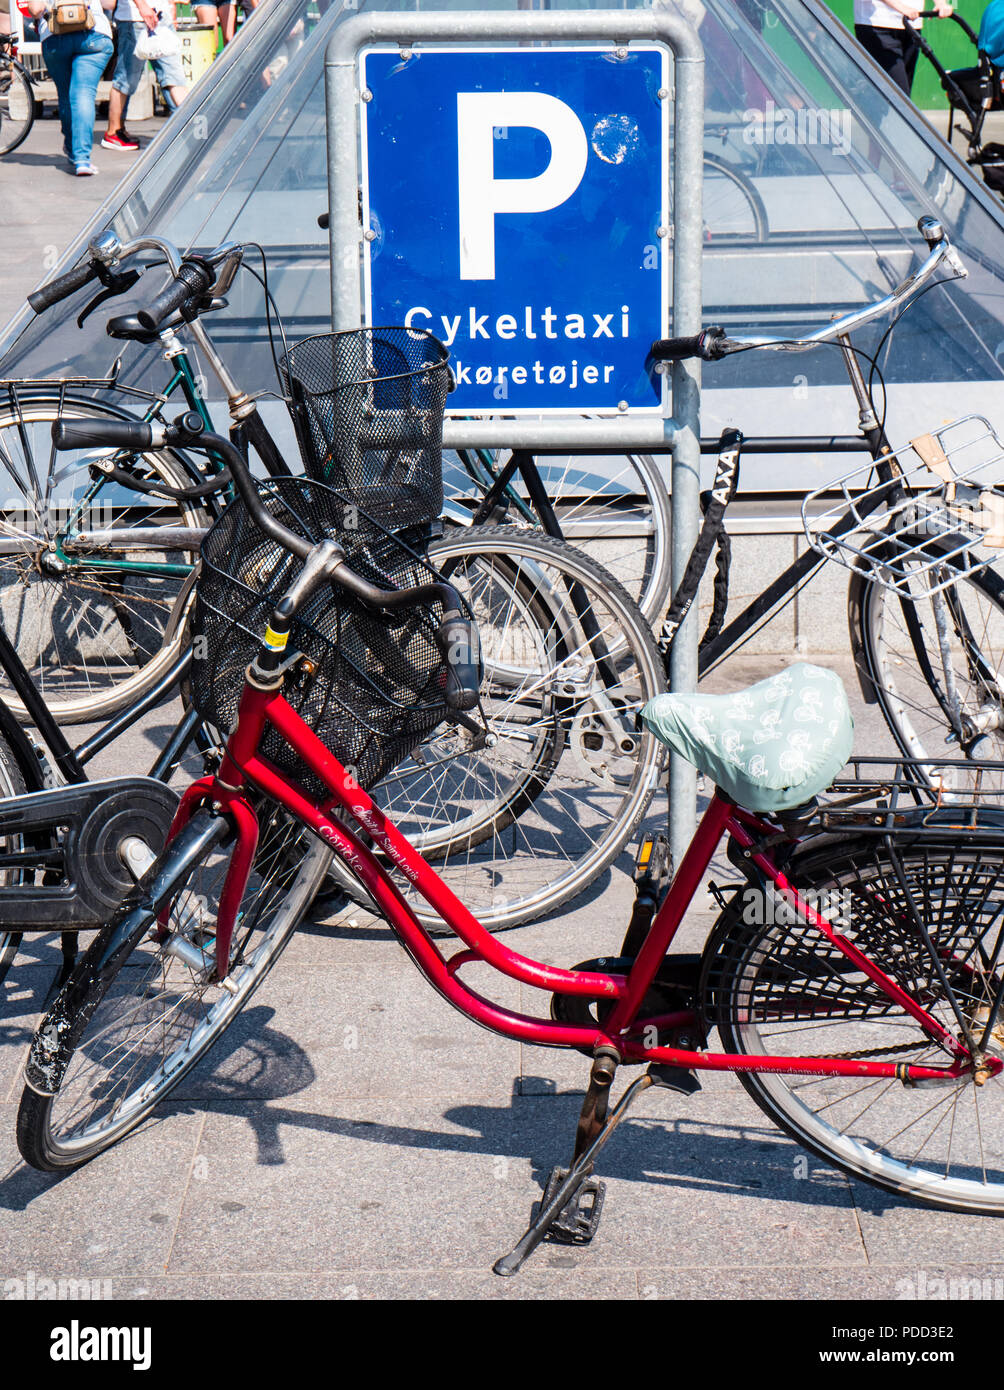 Cycle Parking Outside, Magasin du Nord, Department Store, owned by Debenhams, Copenhagen, Zealand, Denmark, Europe. - Stock Image